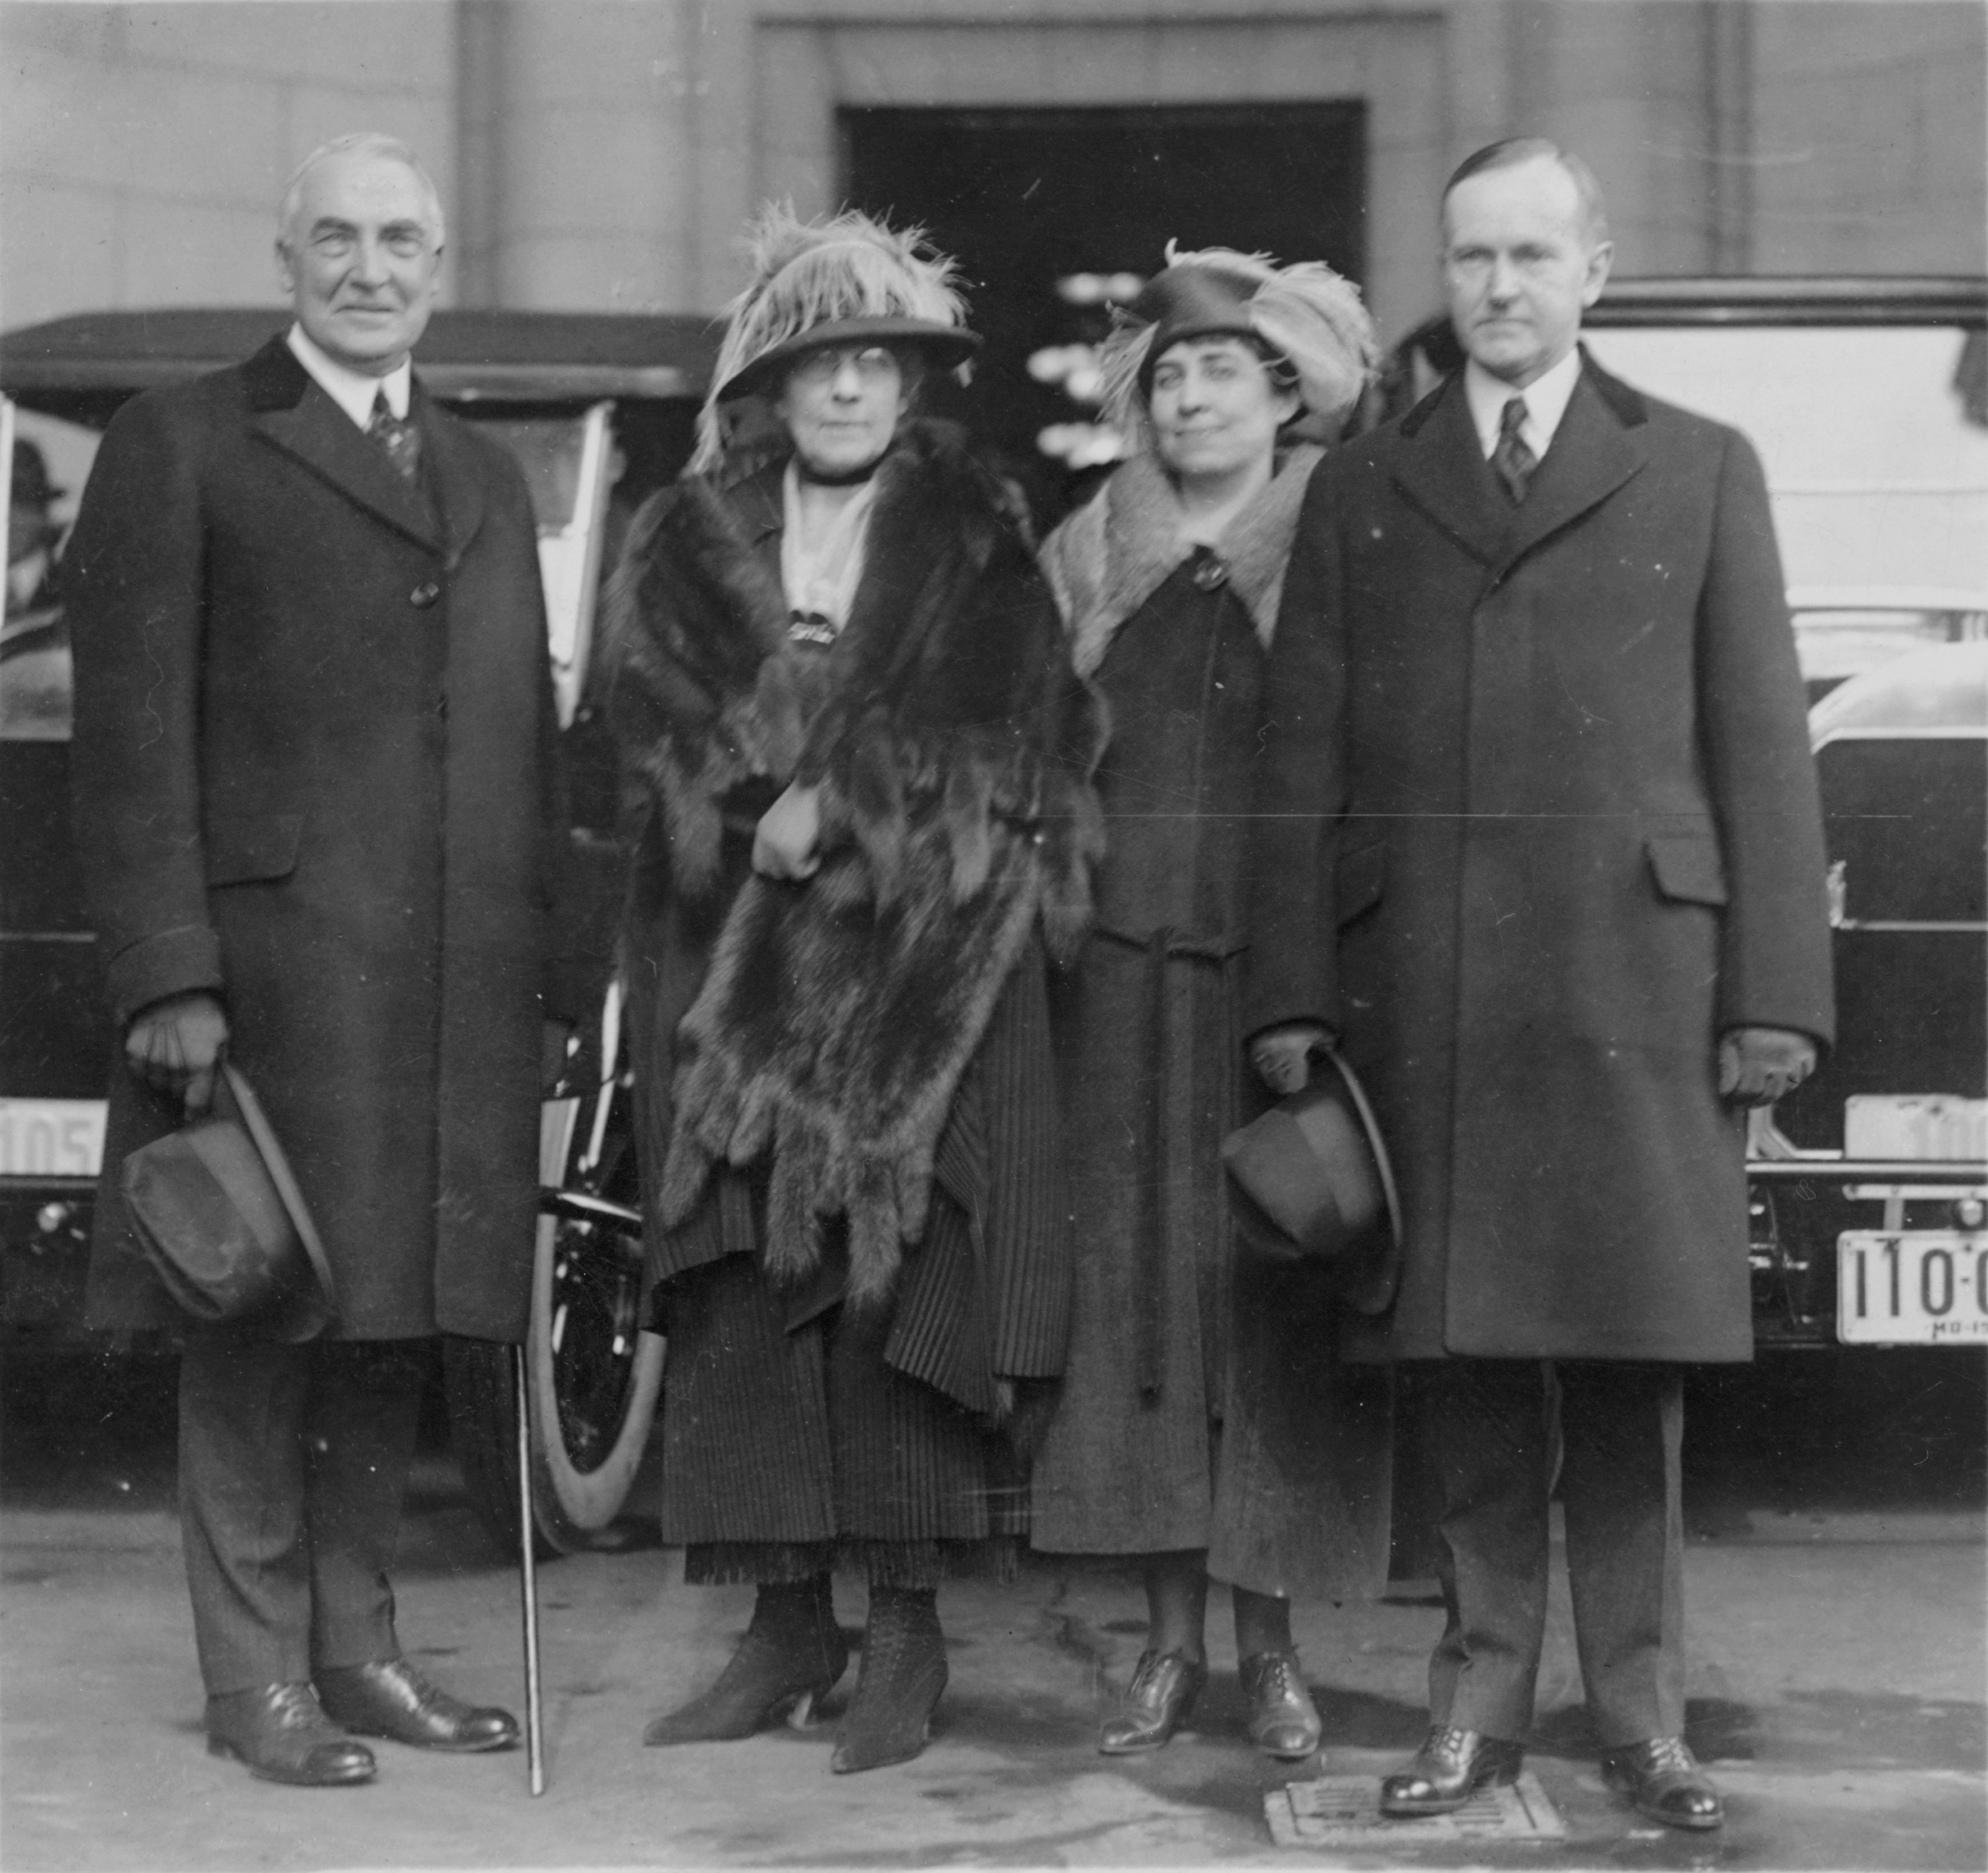 President Harding and Vice President Coolidge with their wives HardingCoolidge.jpg